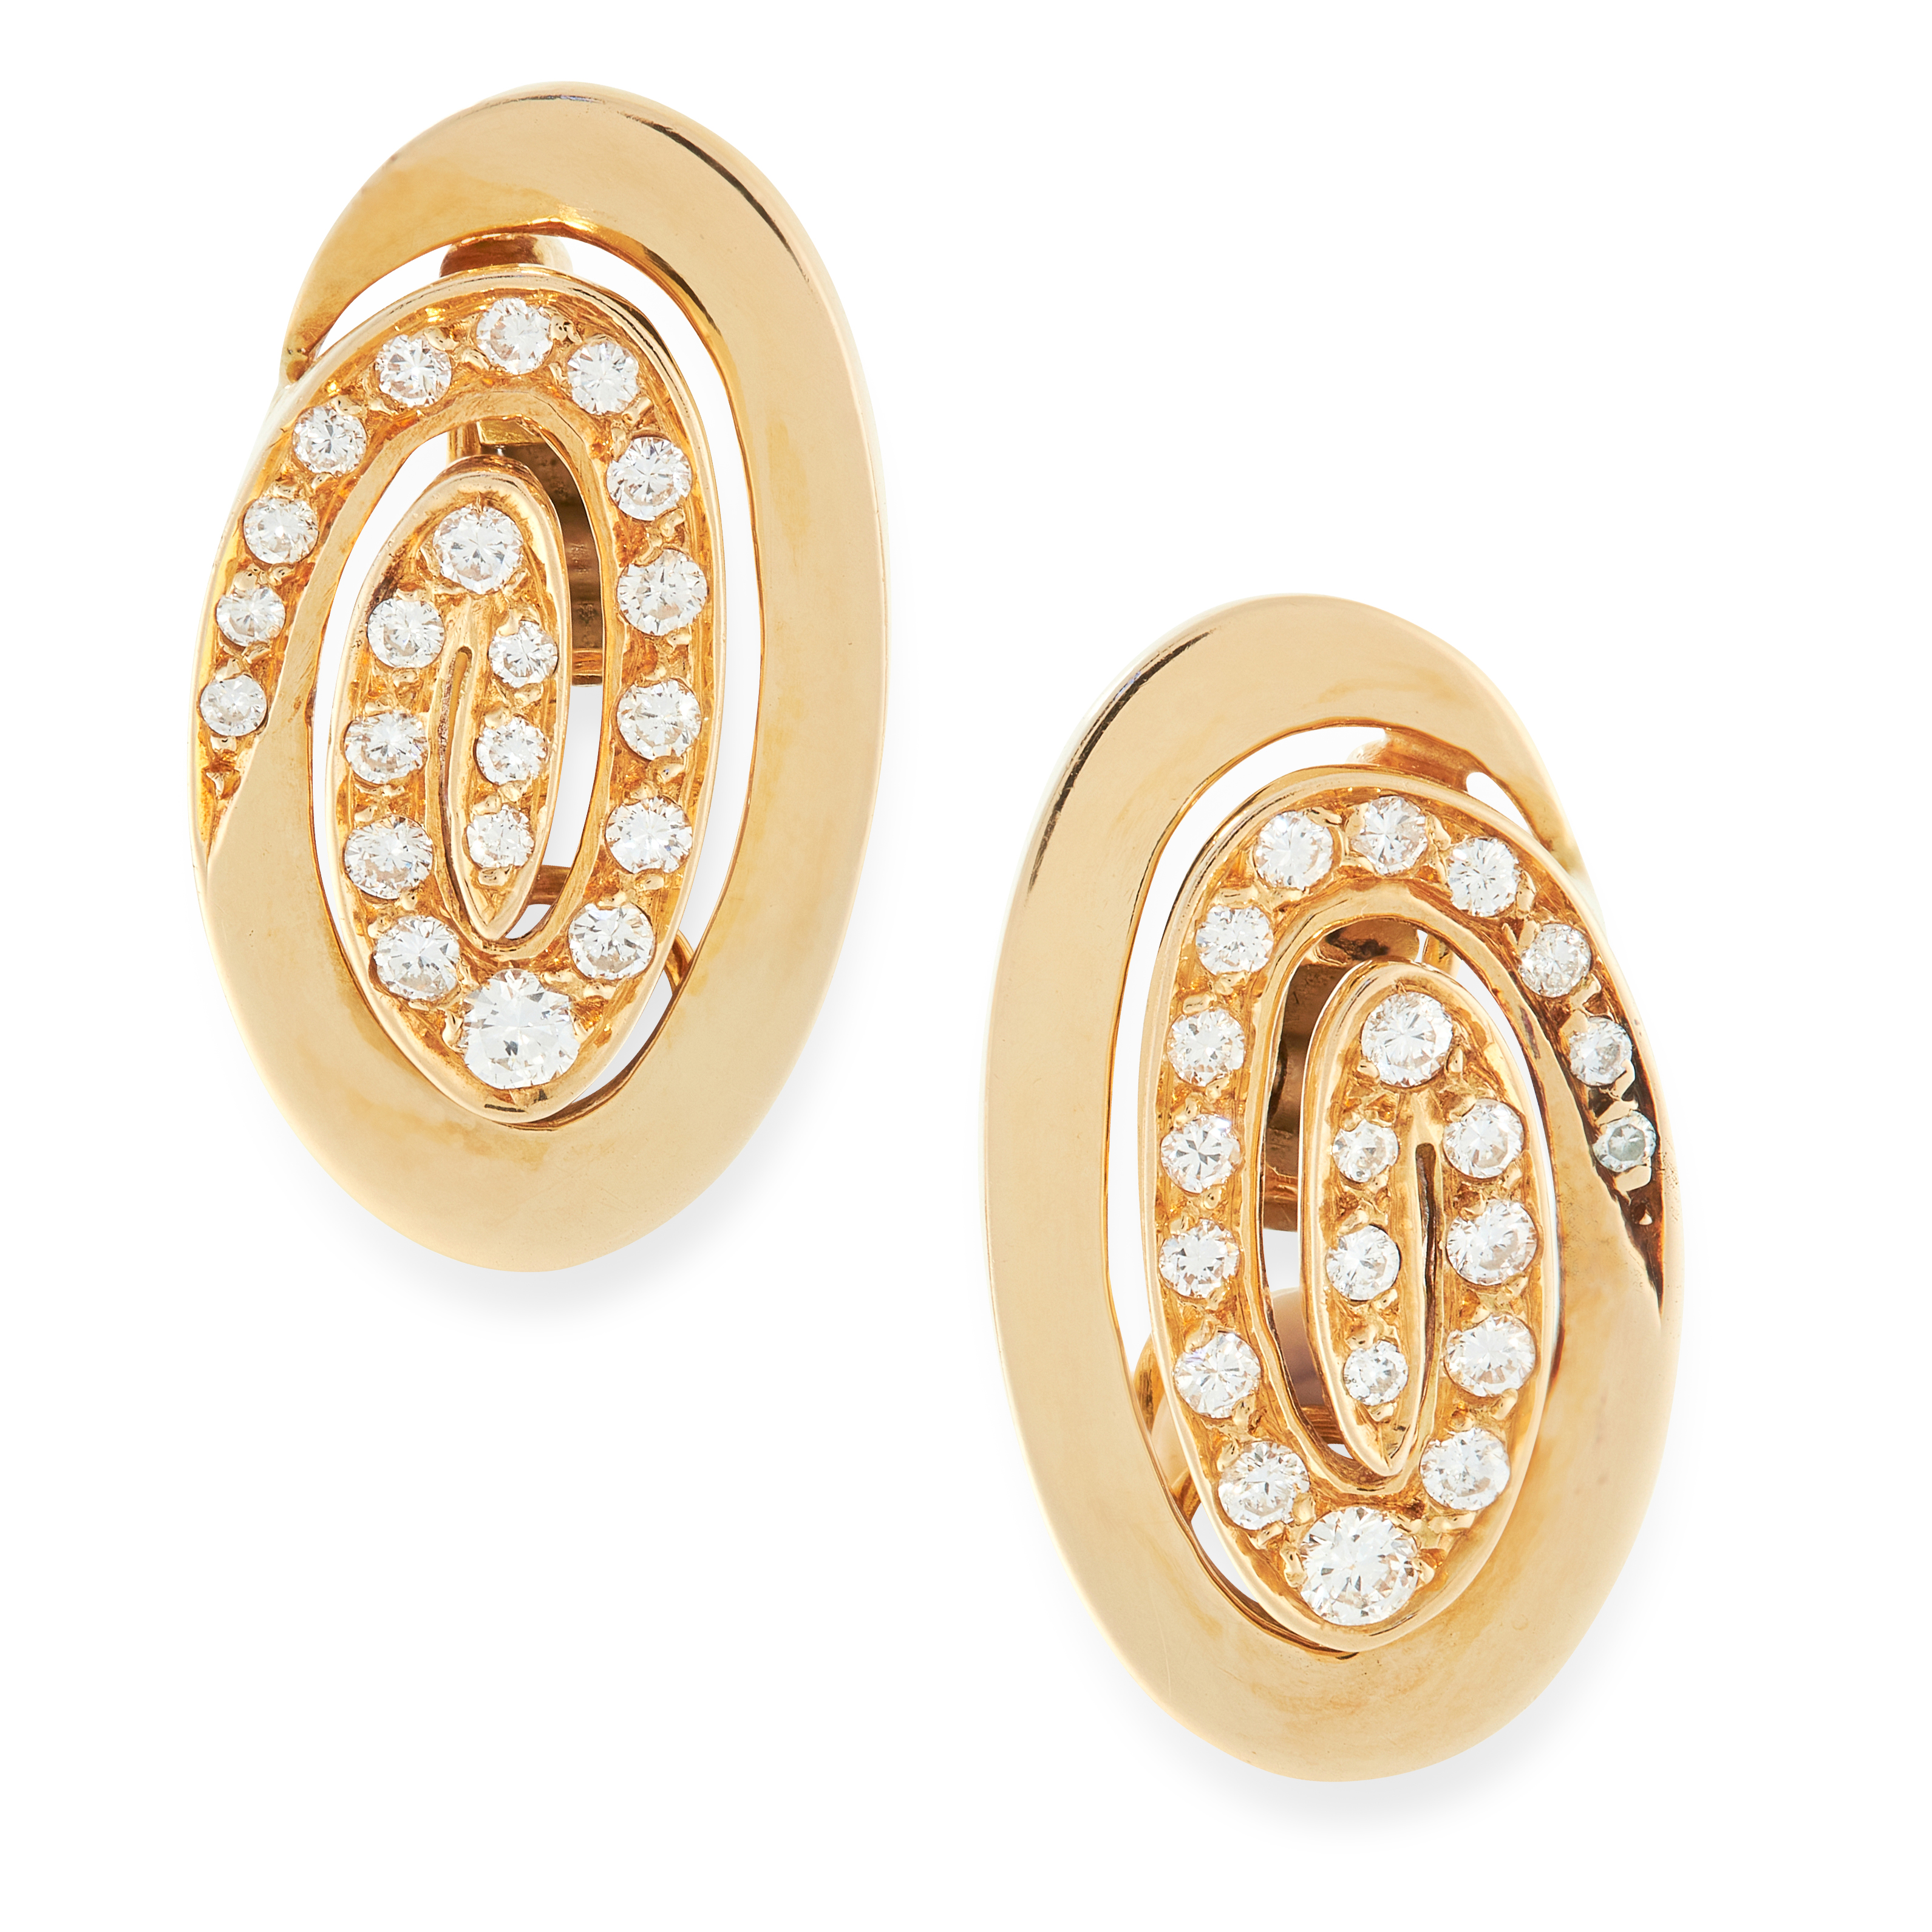 A PAIR OF DIAMOND CLIP EARRINGS, BULGARI in 18ct yellow gold, the oval bodies formed of scrolling